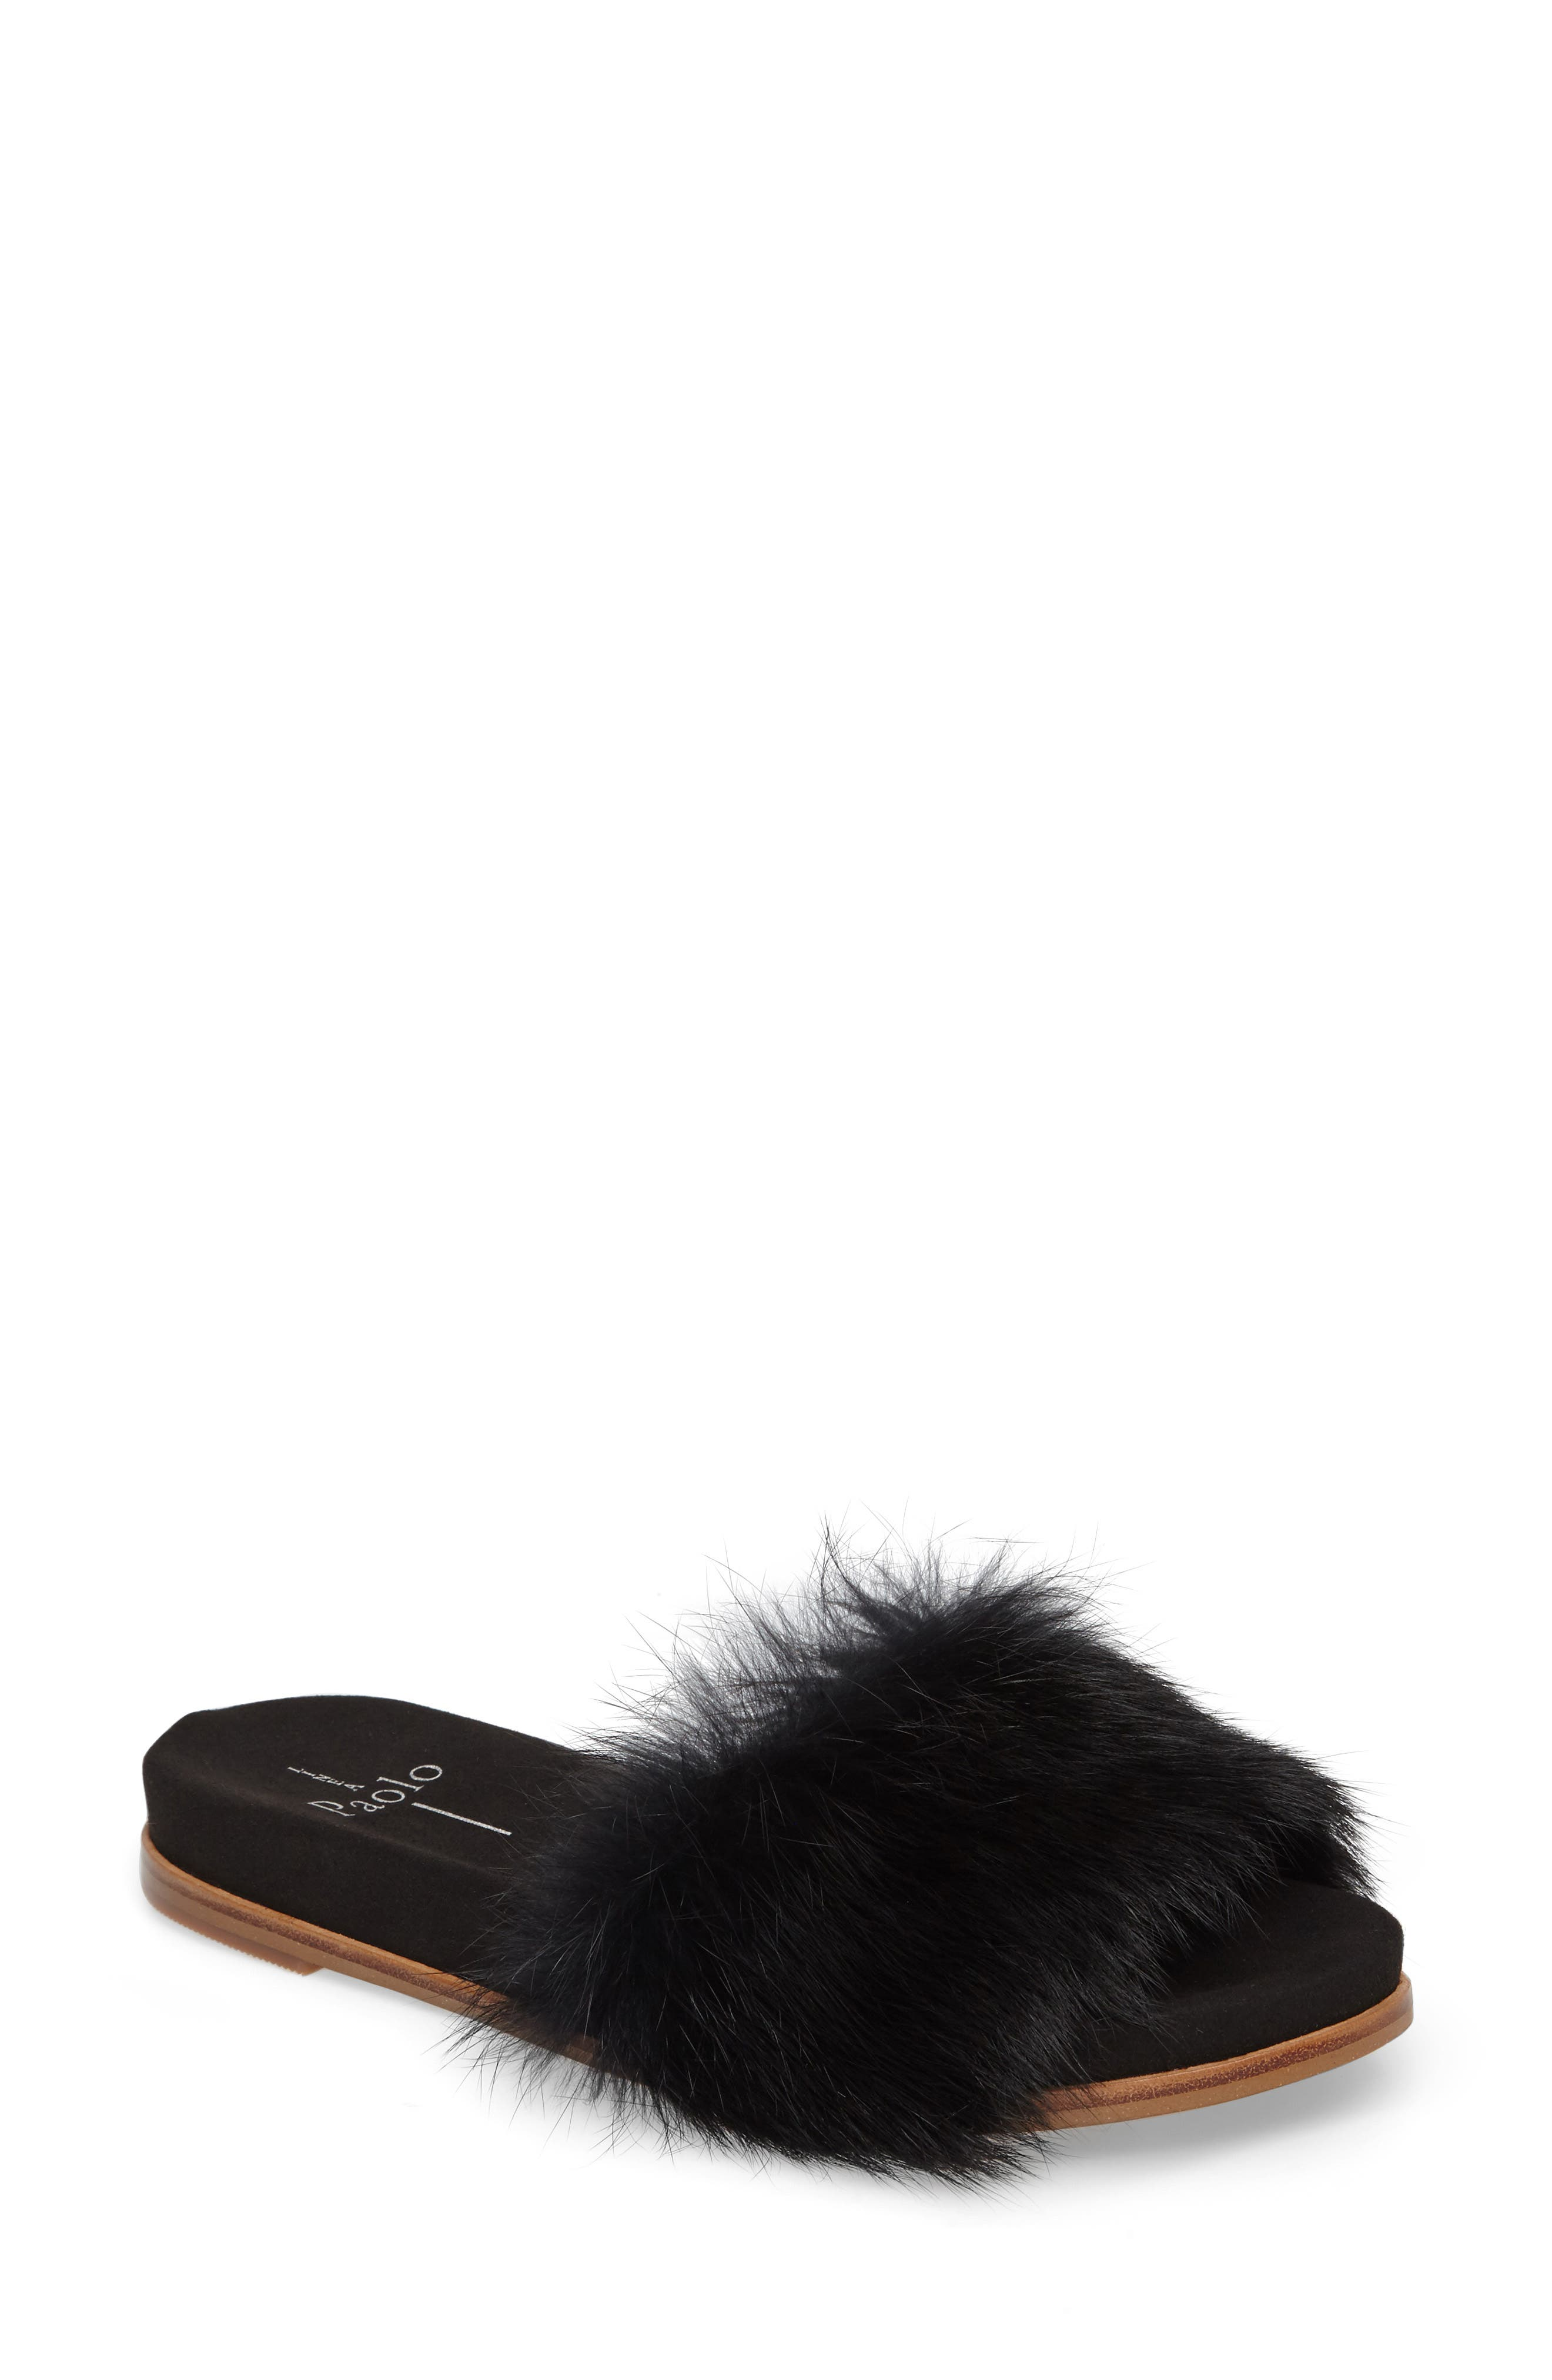 Alternate Image 1 Selected - Linea Paolo Lisa Genuine Rabbit Fur Slide Sandal (Women)